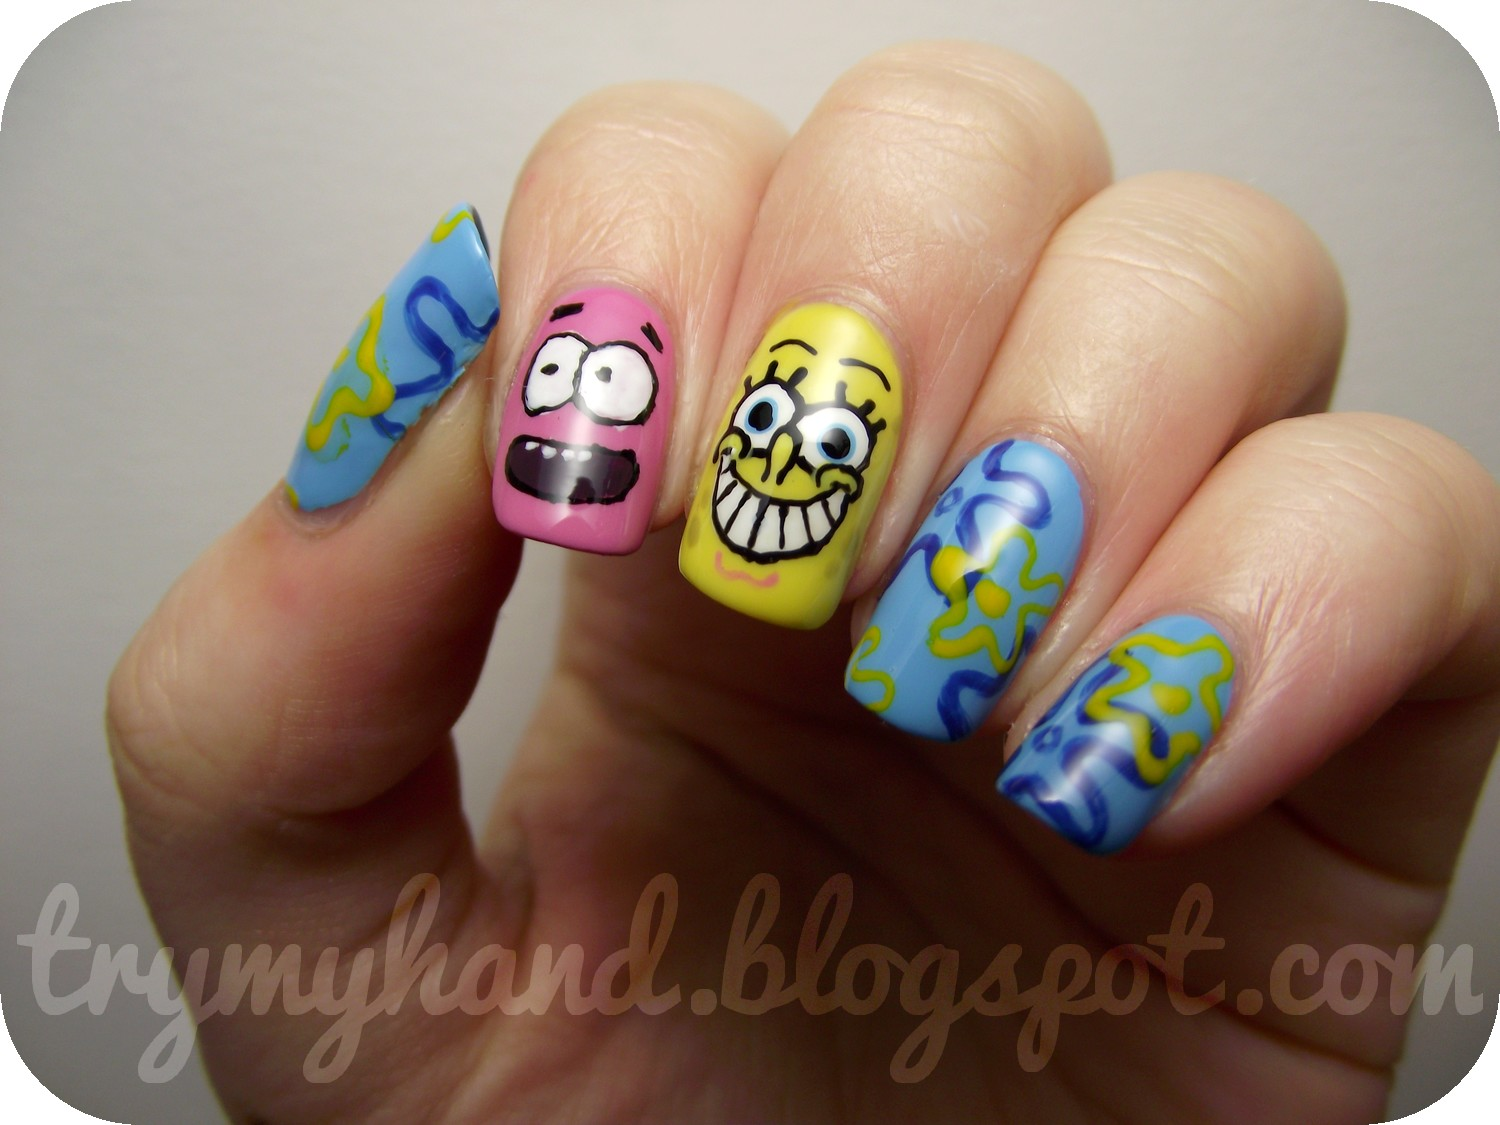 Try my hand notd who lives in a pineapple under the sea wednesday 17 october 2012 prinsesfo Image collections